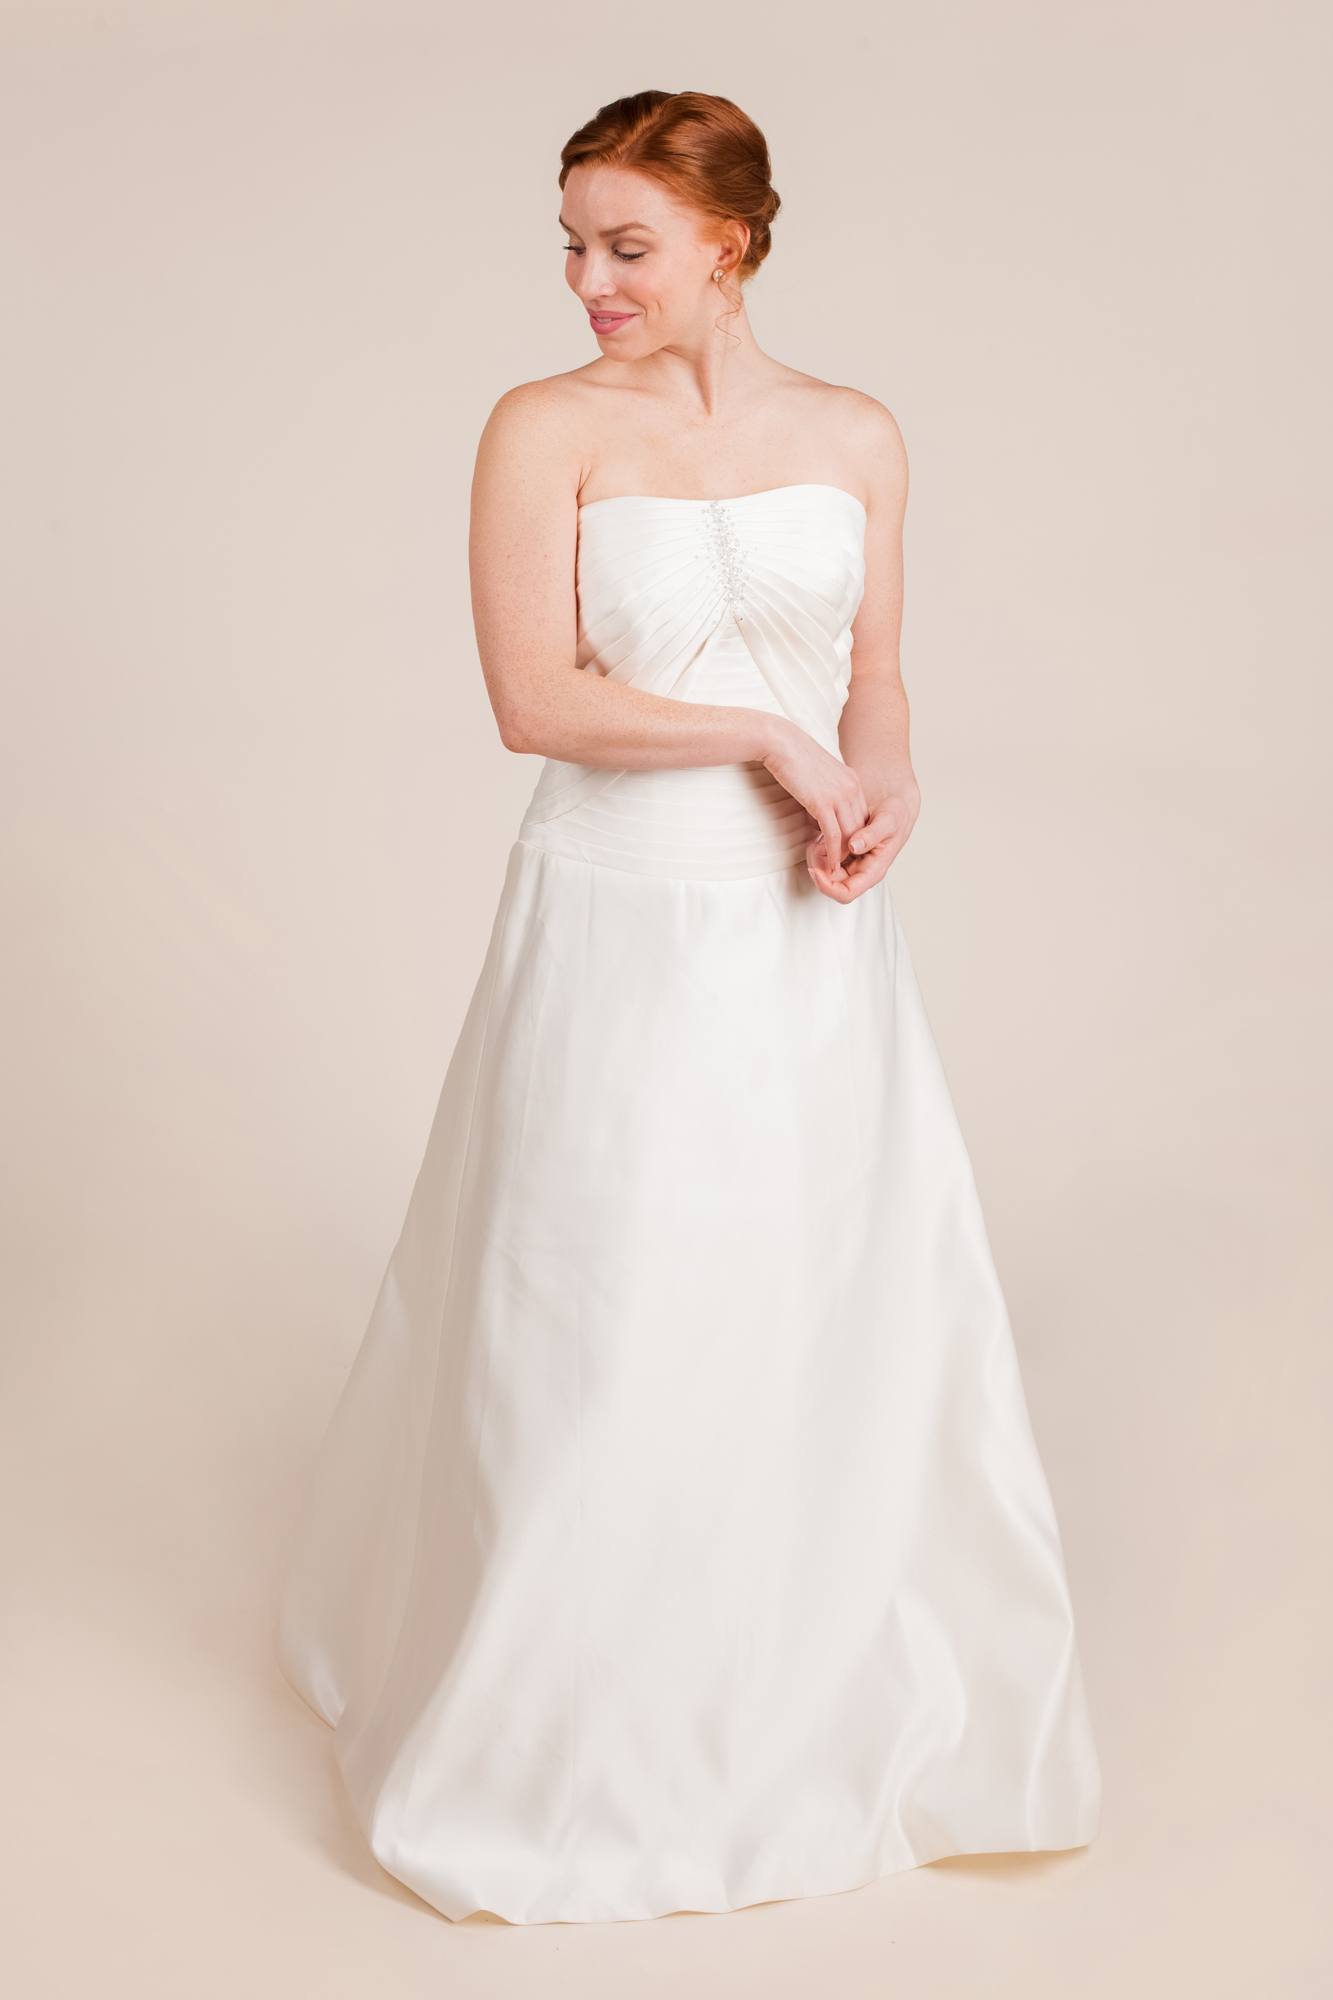 Allure bridals size 0 - $696 - (46% OFF)